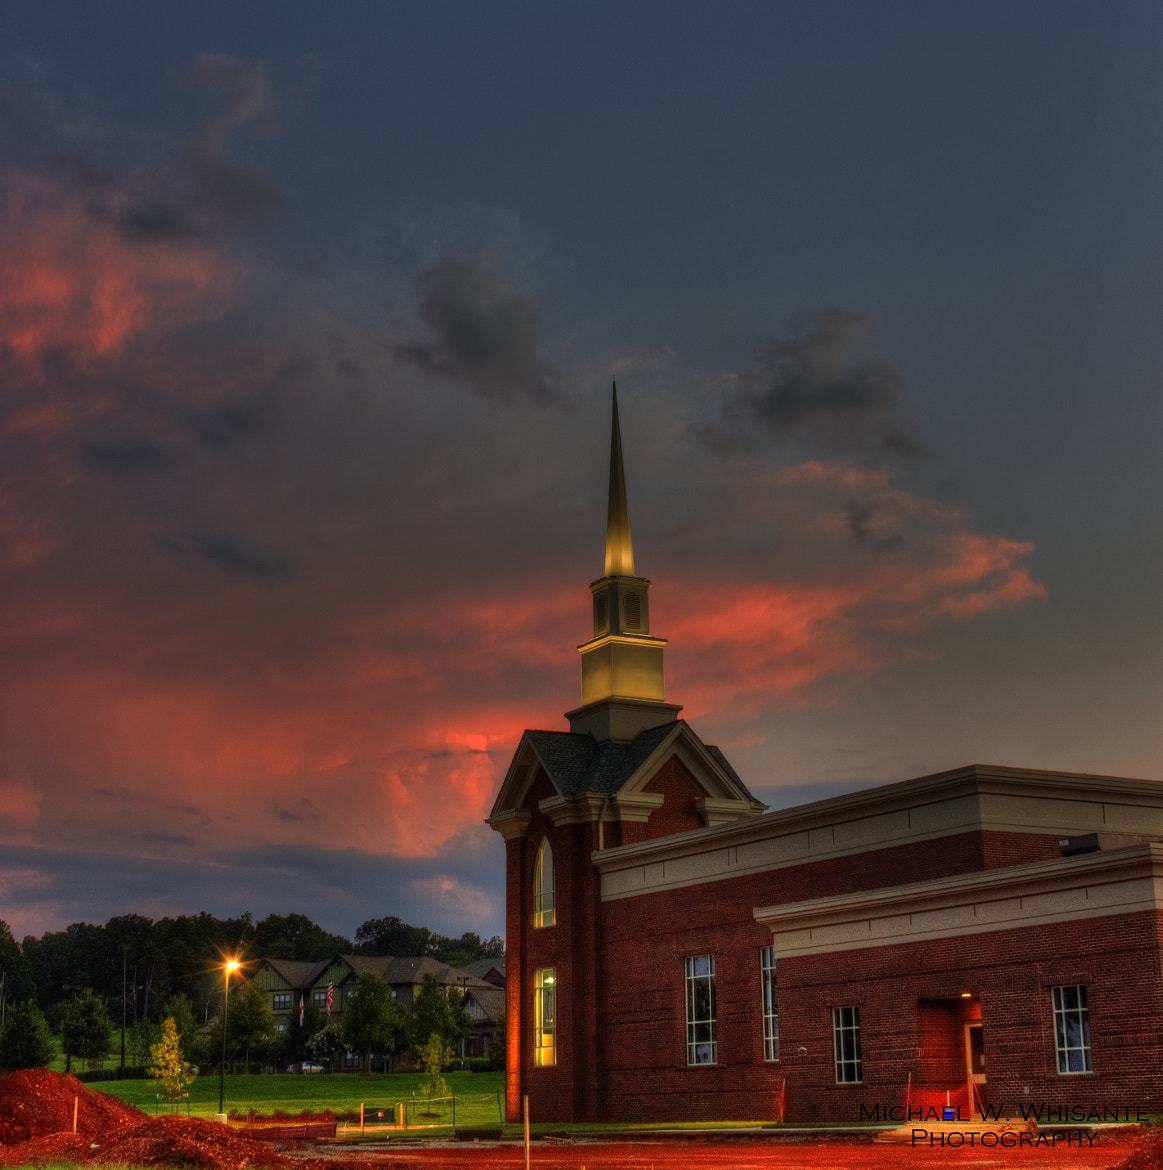 Photograph Church at Sunset by Michael  Whisante on 500px